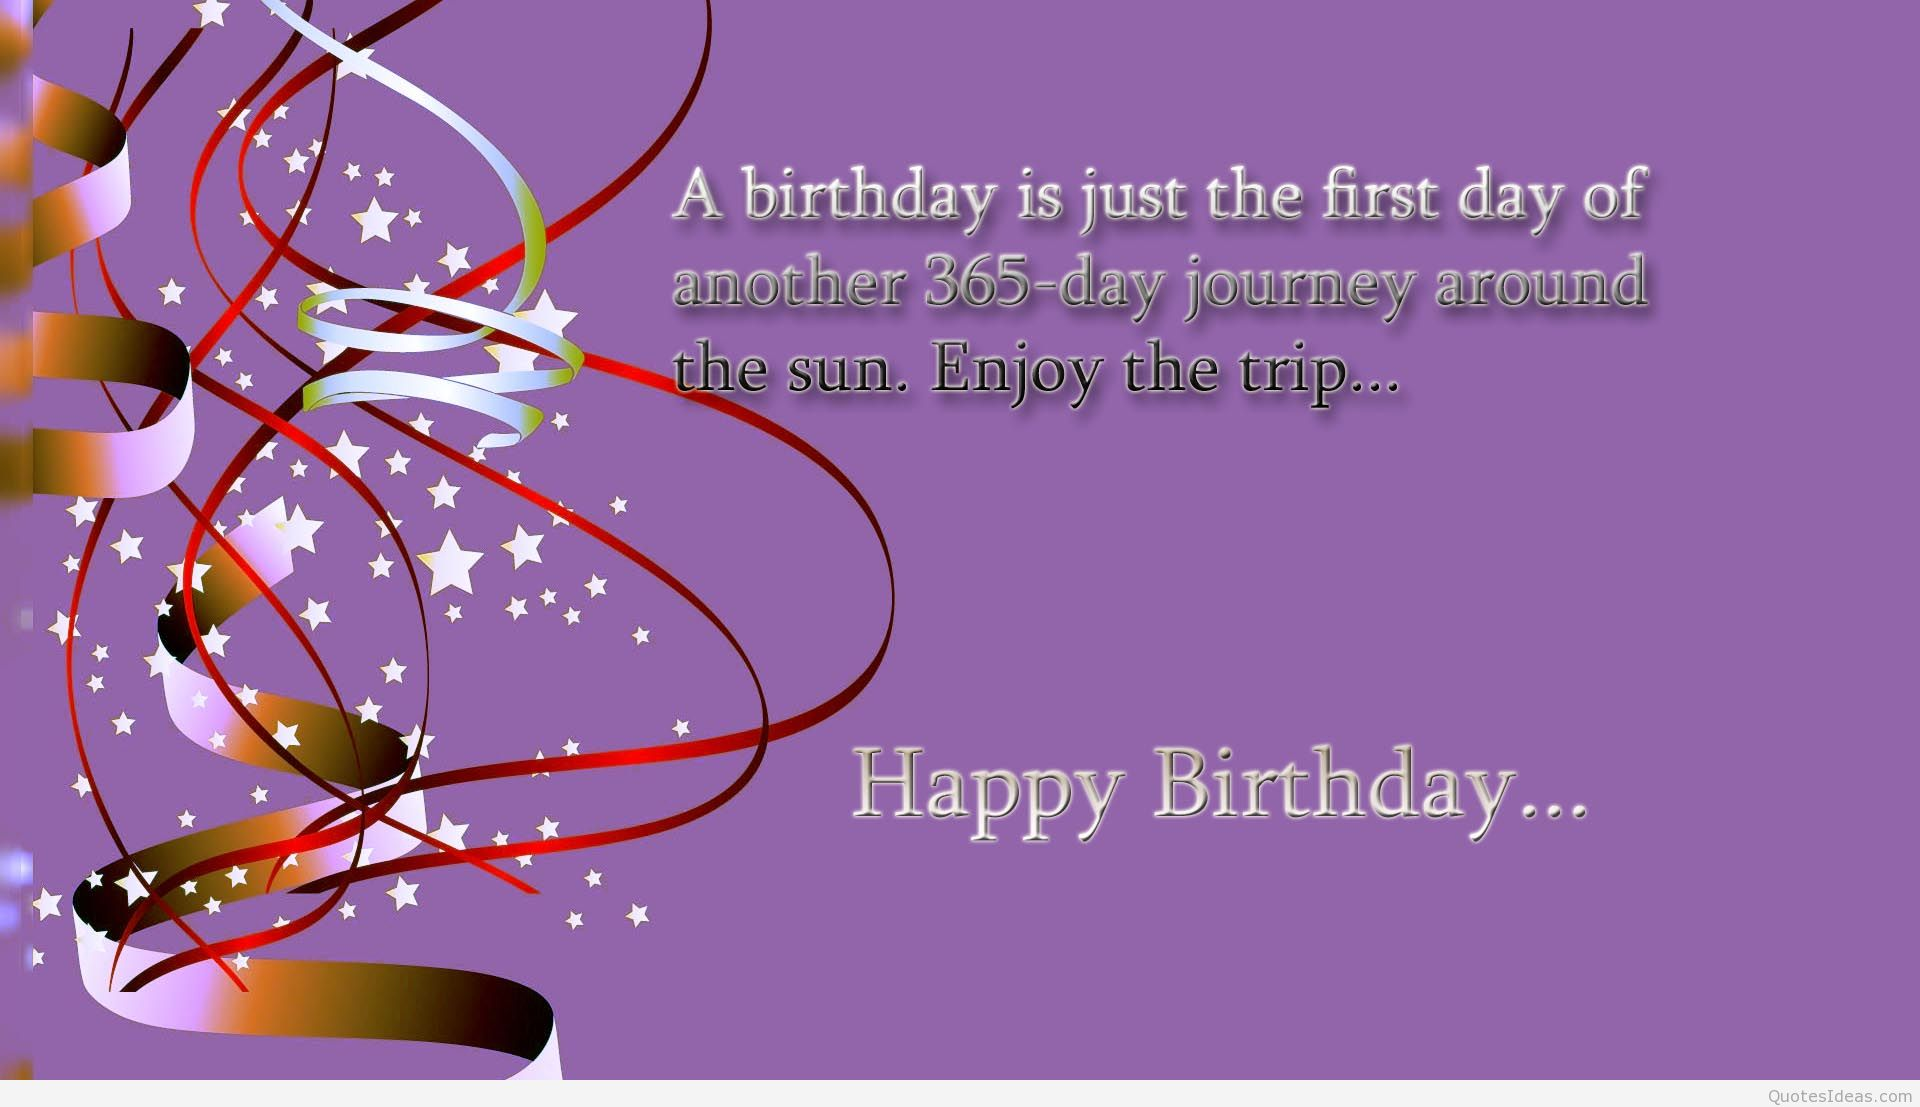 happy birthday message quotes ; a-birthday-is-just-the-first-day-of-another-365-day-journey-around-the-sun-enjoy-the-trip-happy-birthday